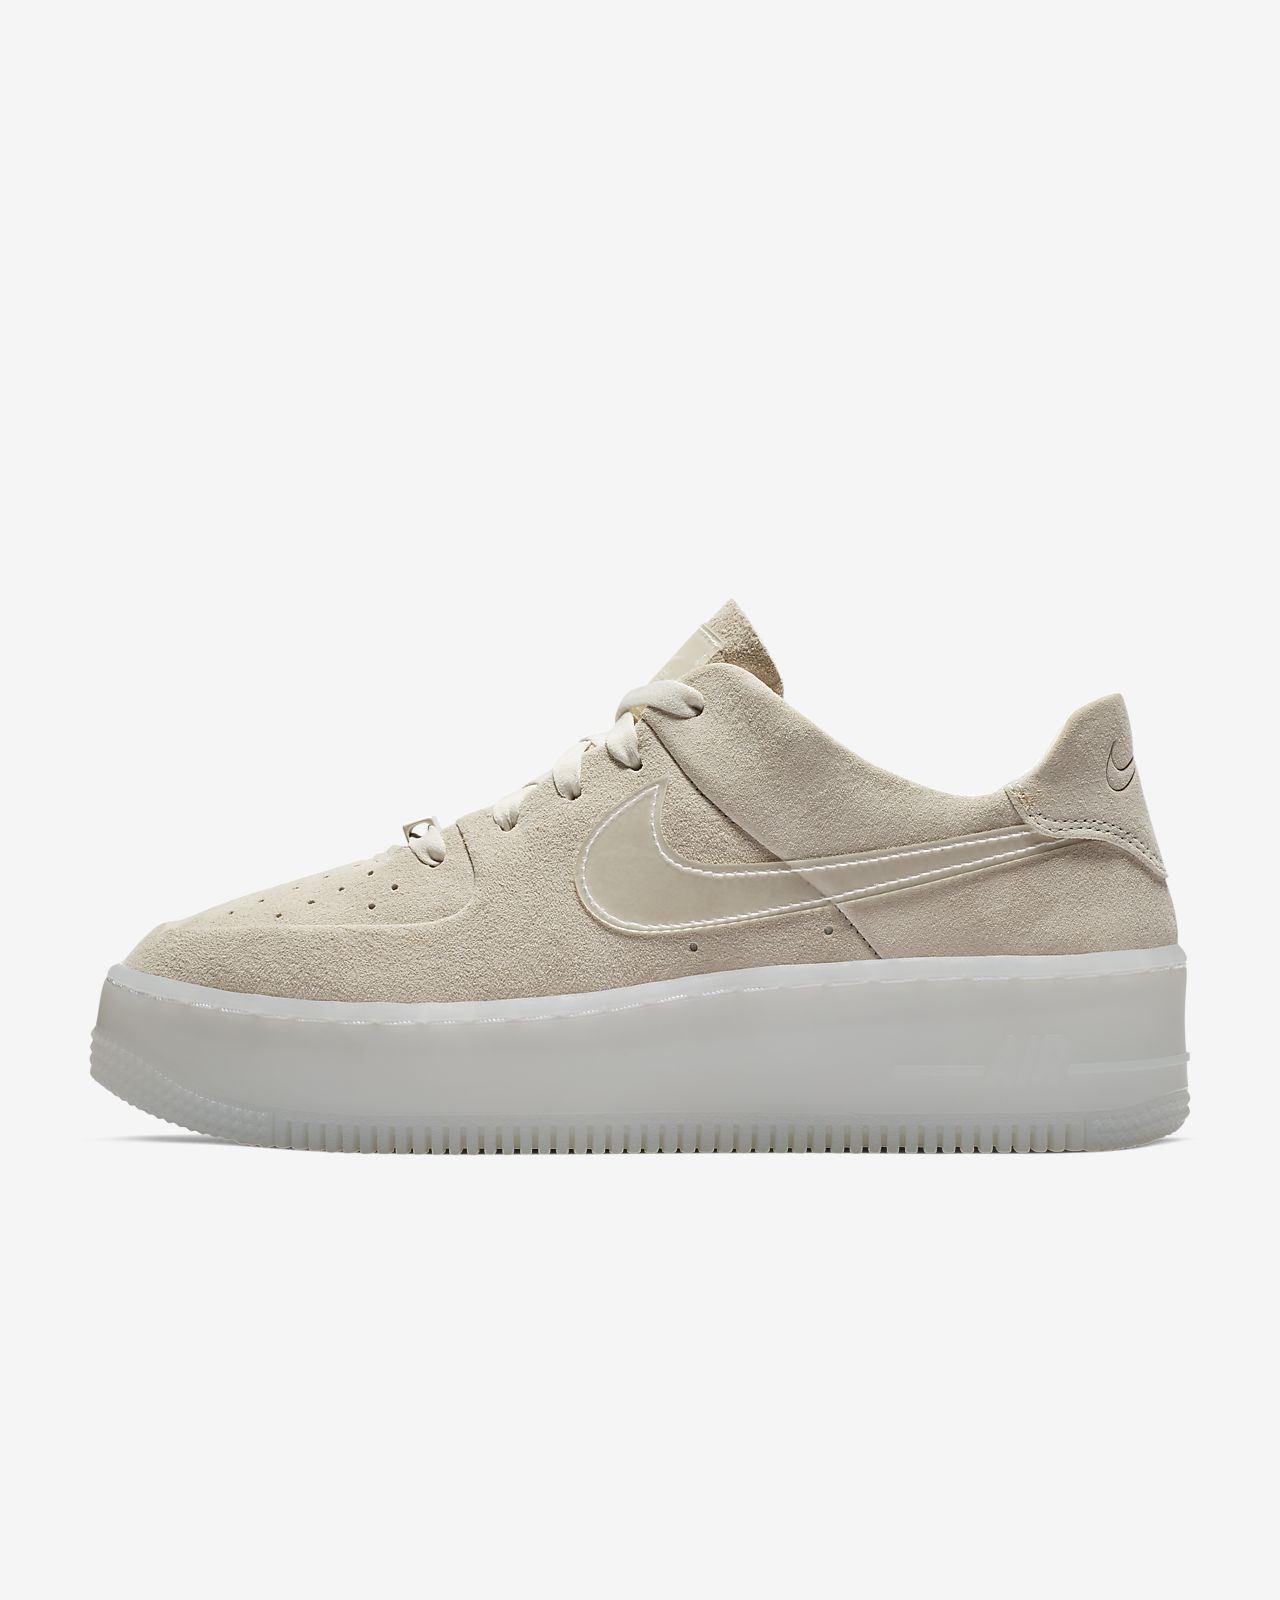 the best attitude 329ad ced5d Nike Air Force 1 Sage Low LX